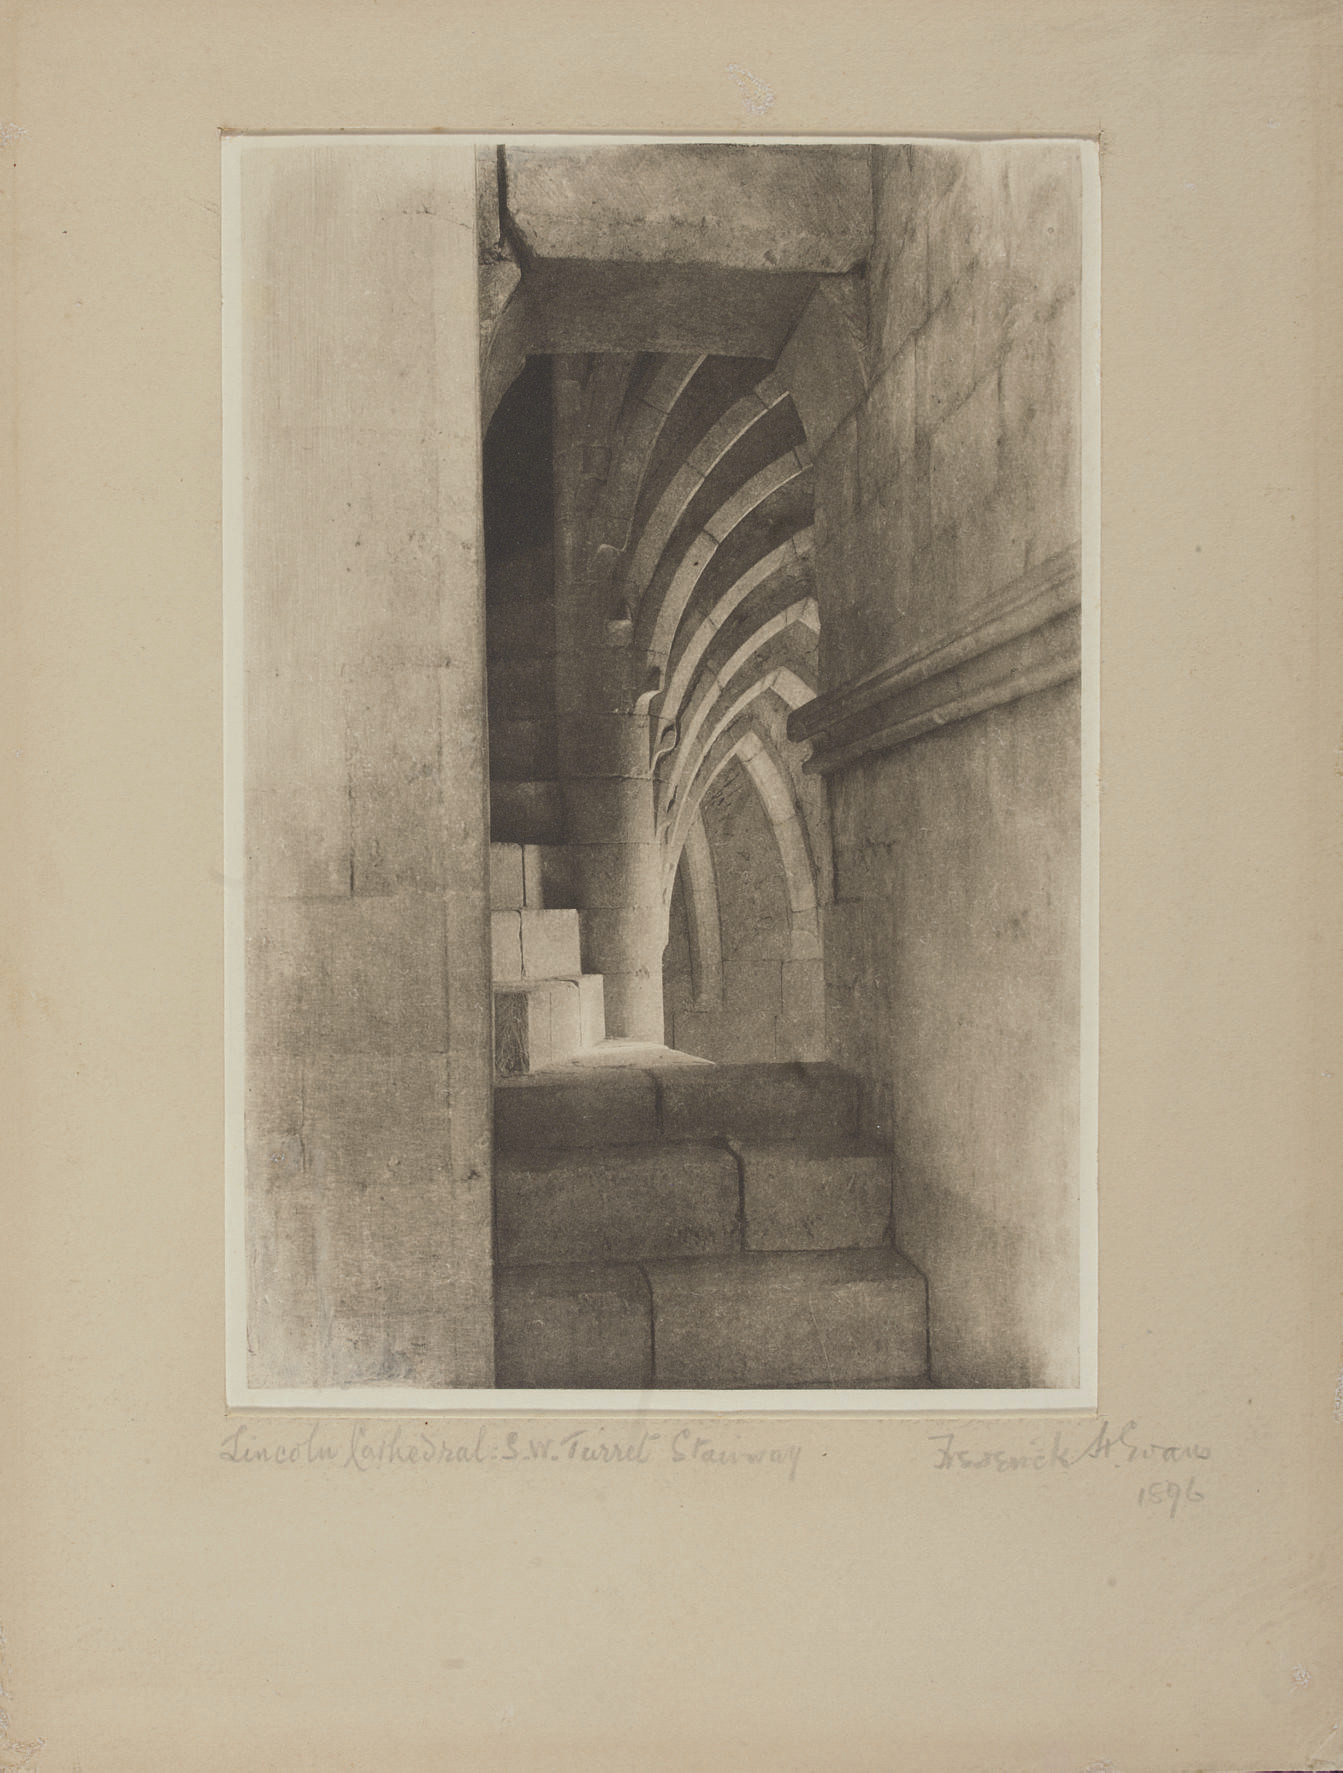 Lincoln Cathedral, Stairs in the S.W. Stairway, 1896